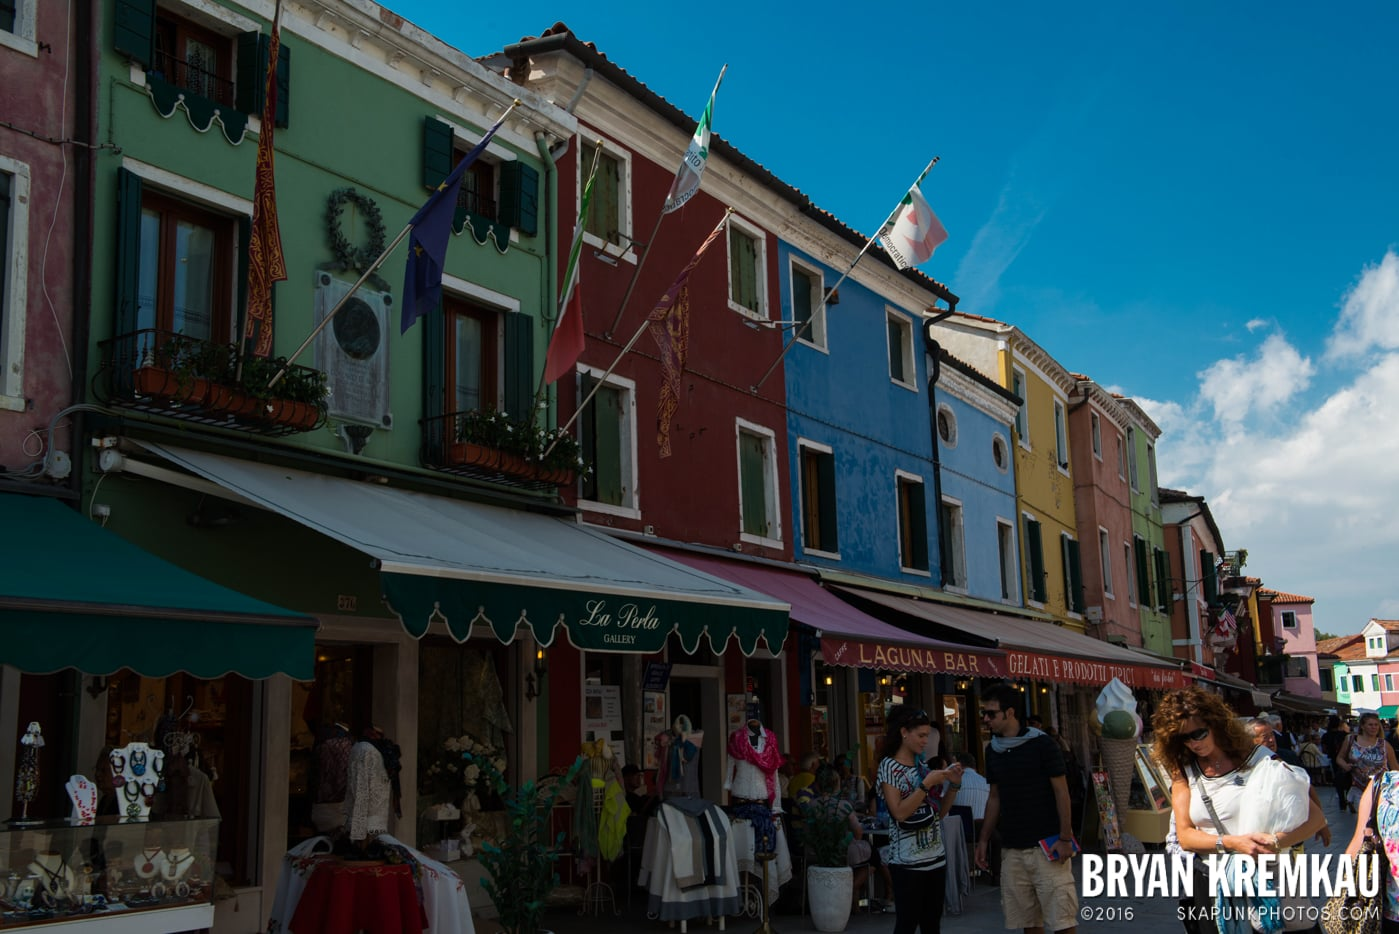 Italy Vacation - Day 6: Murano, Burano, Venice - 9.14.13 (32)